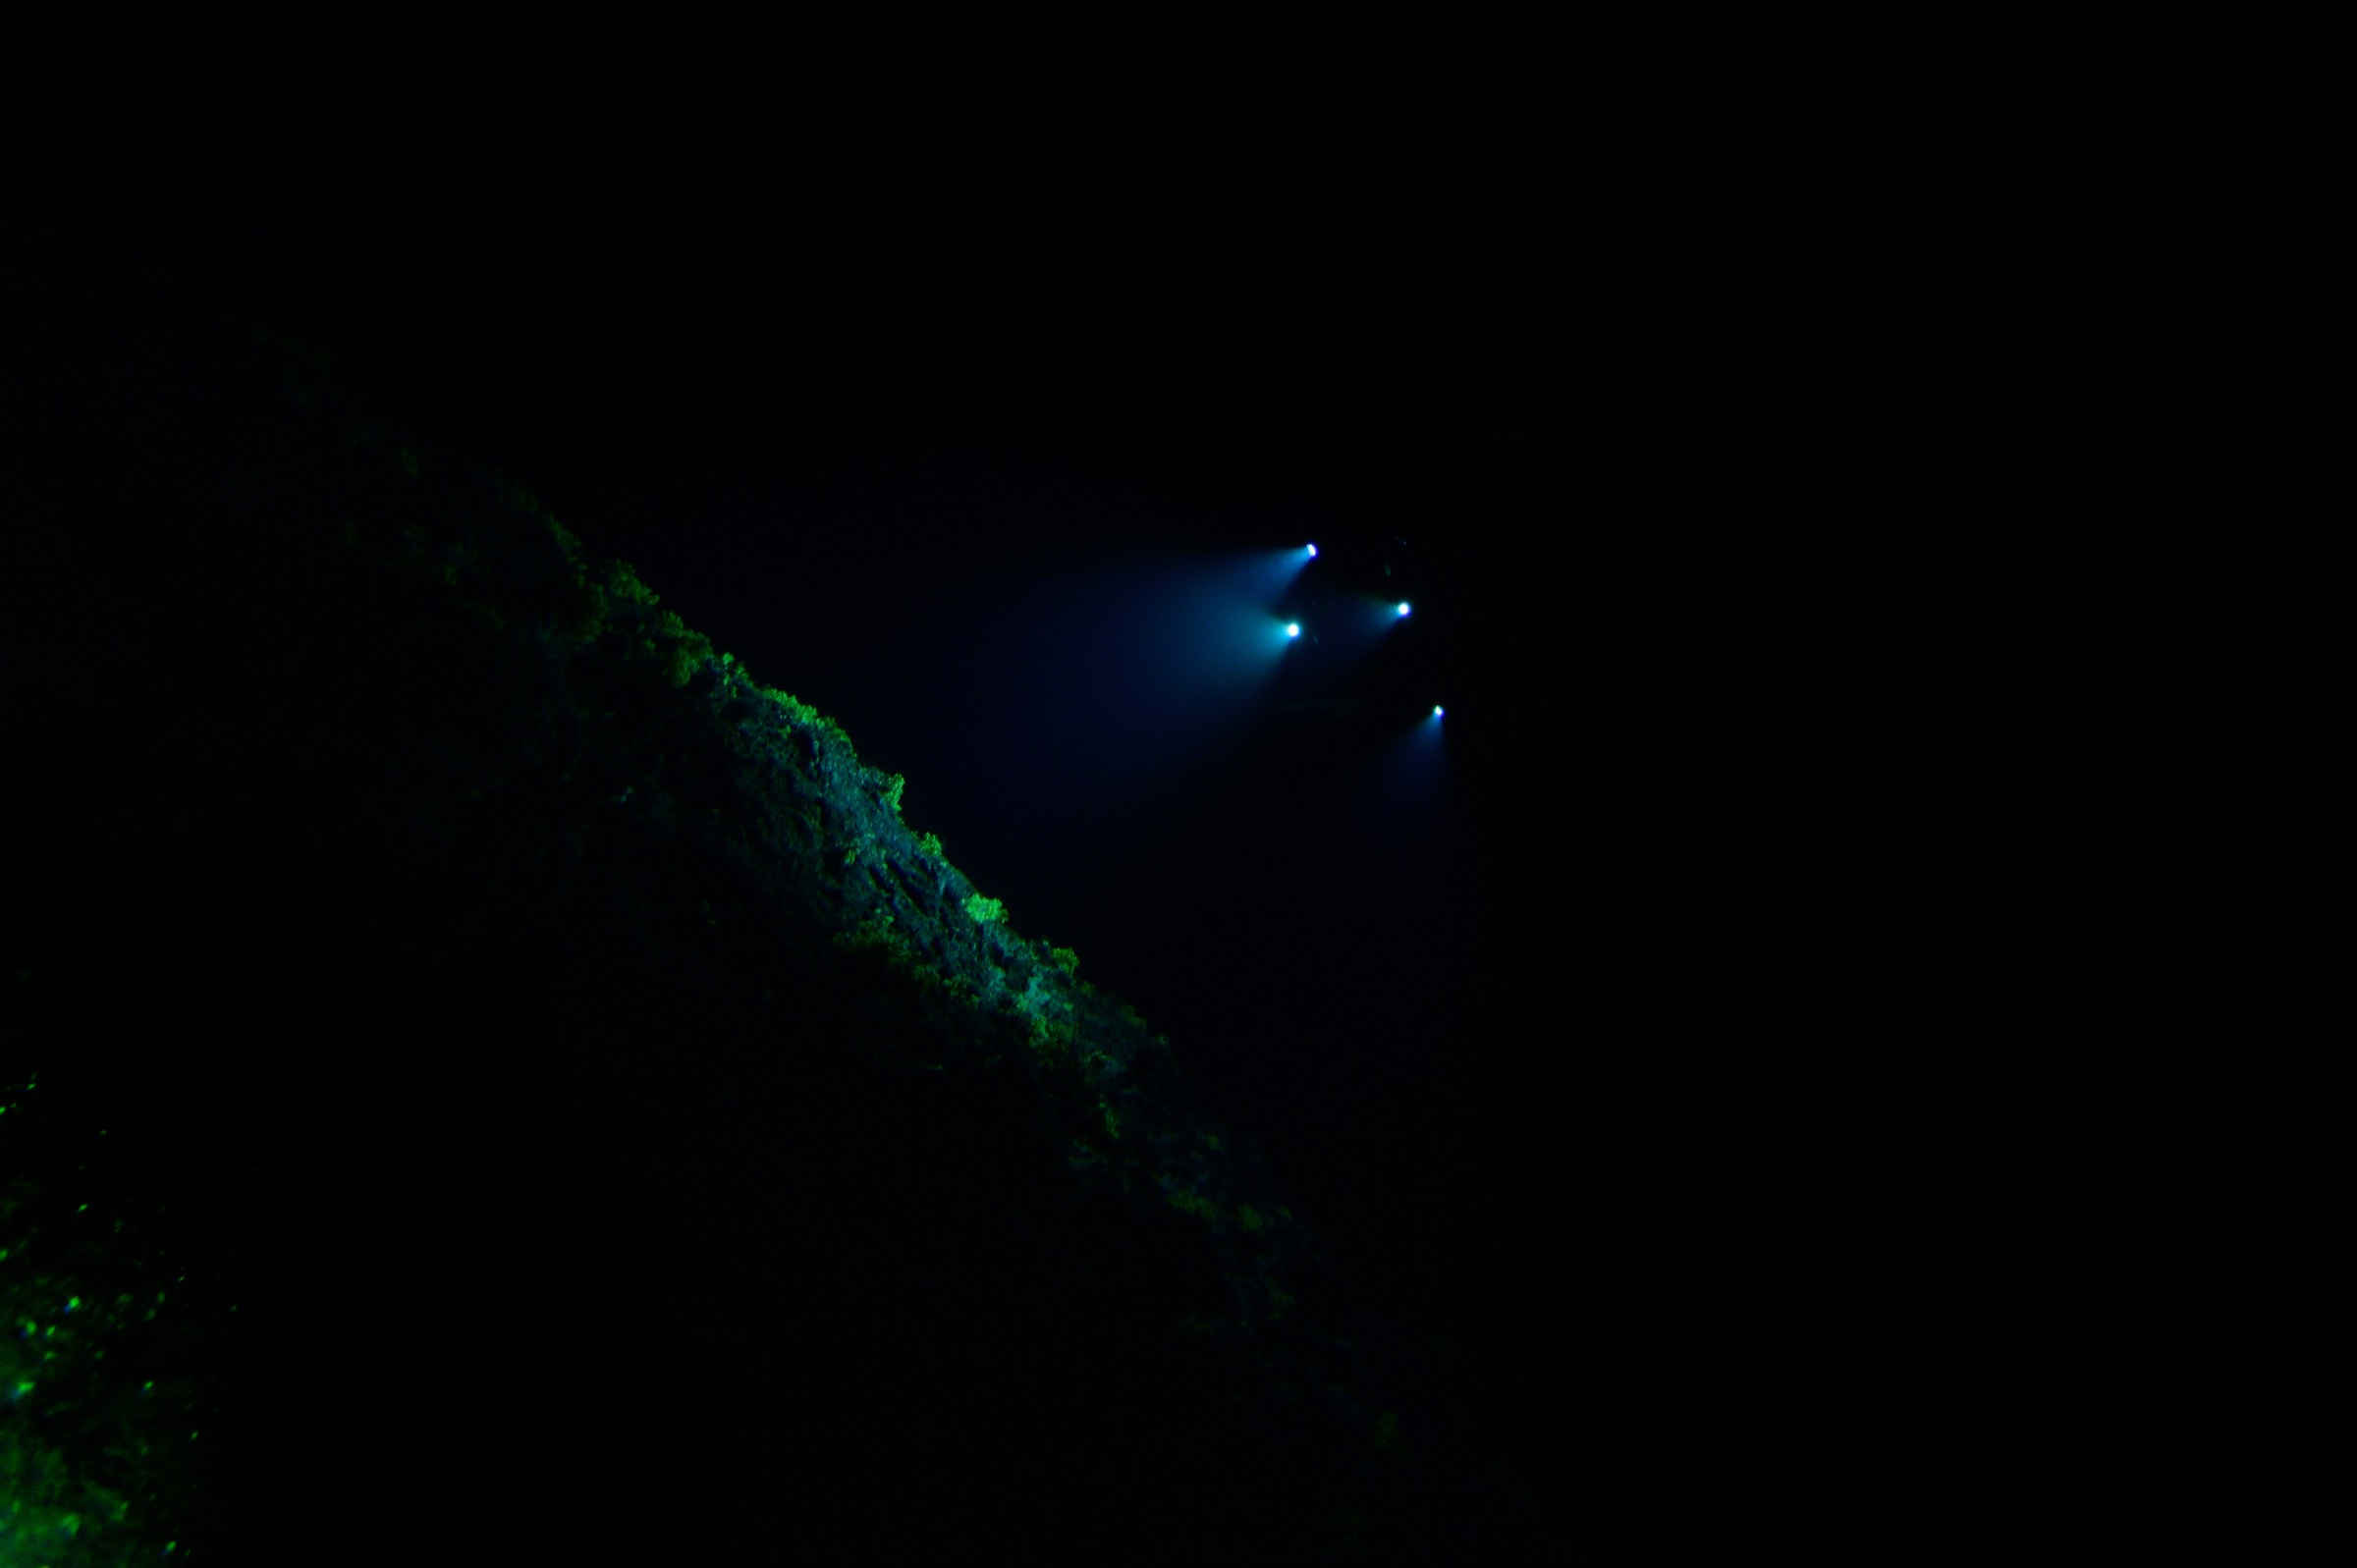 Little is visible below a depth of 500 meters, except the lights of the submersible Deep Rover exploring off the coast of Saint Peter and Saint Paul Archipelago. Photograph by Solvin Zankl